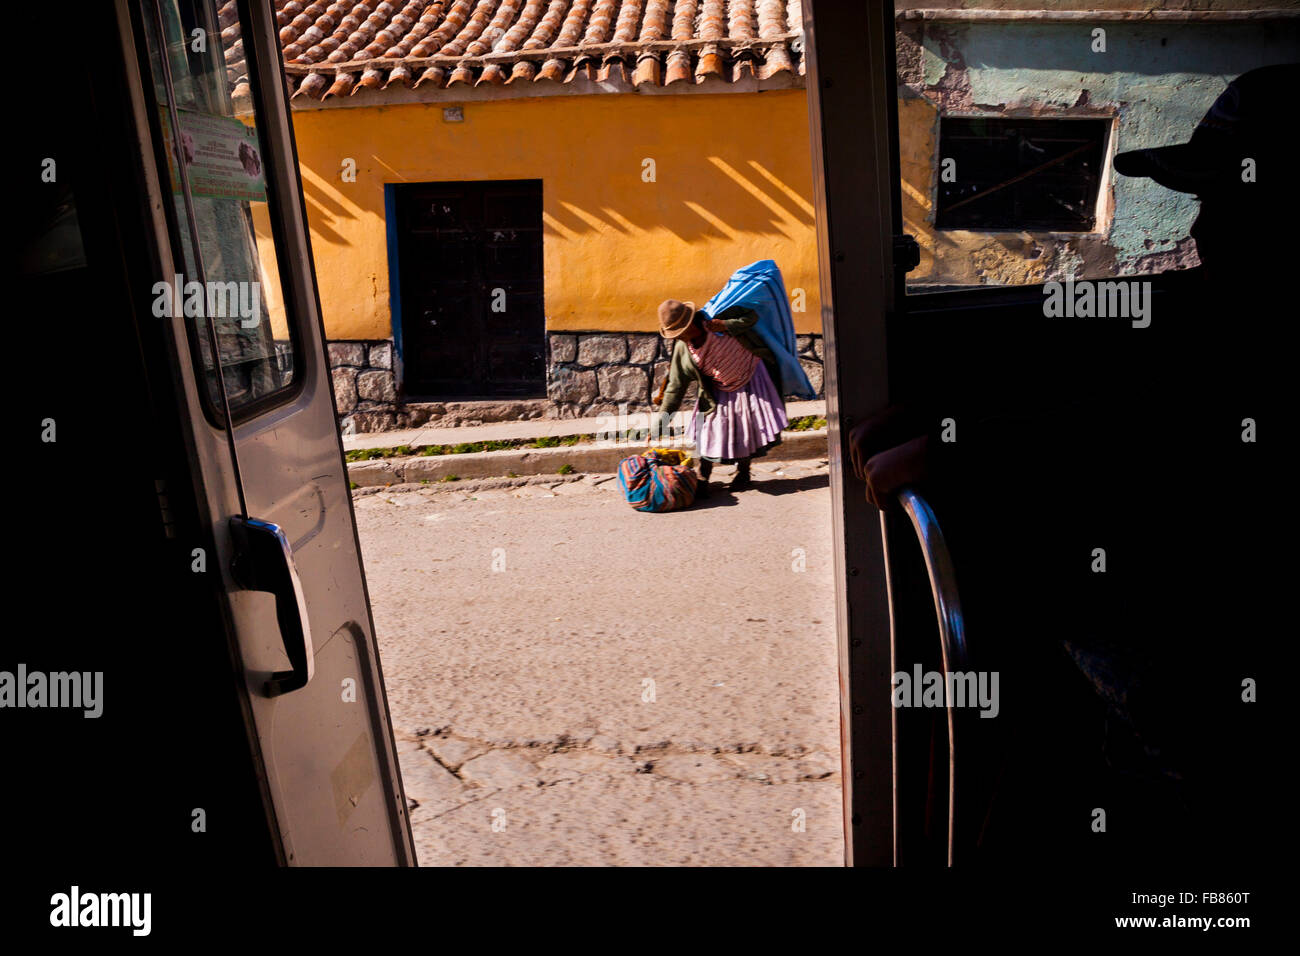 A cholita gathers her things for a mini-bus ride in Potosi, Bolivia. - Stock Image